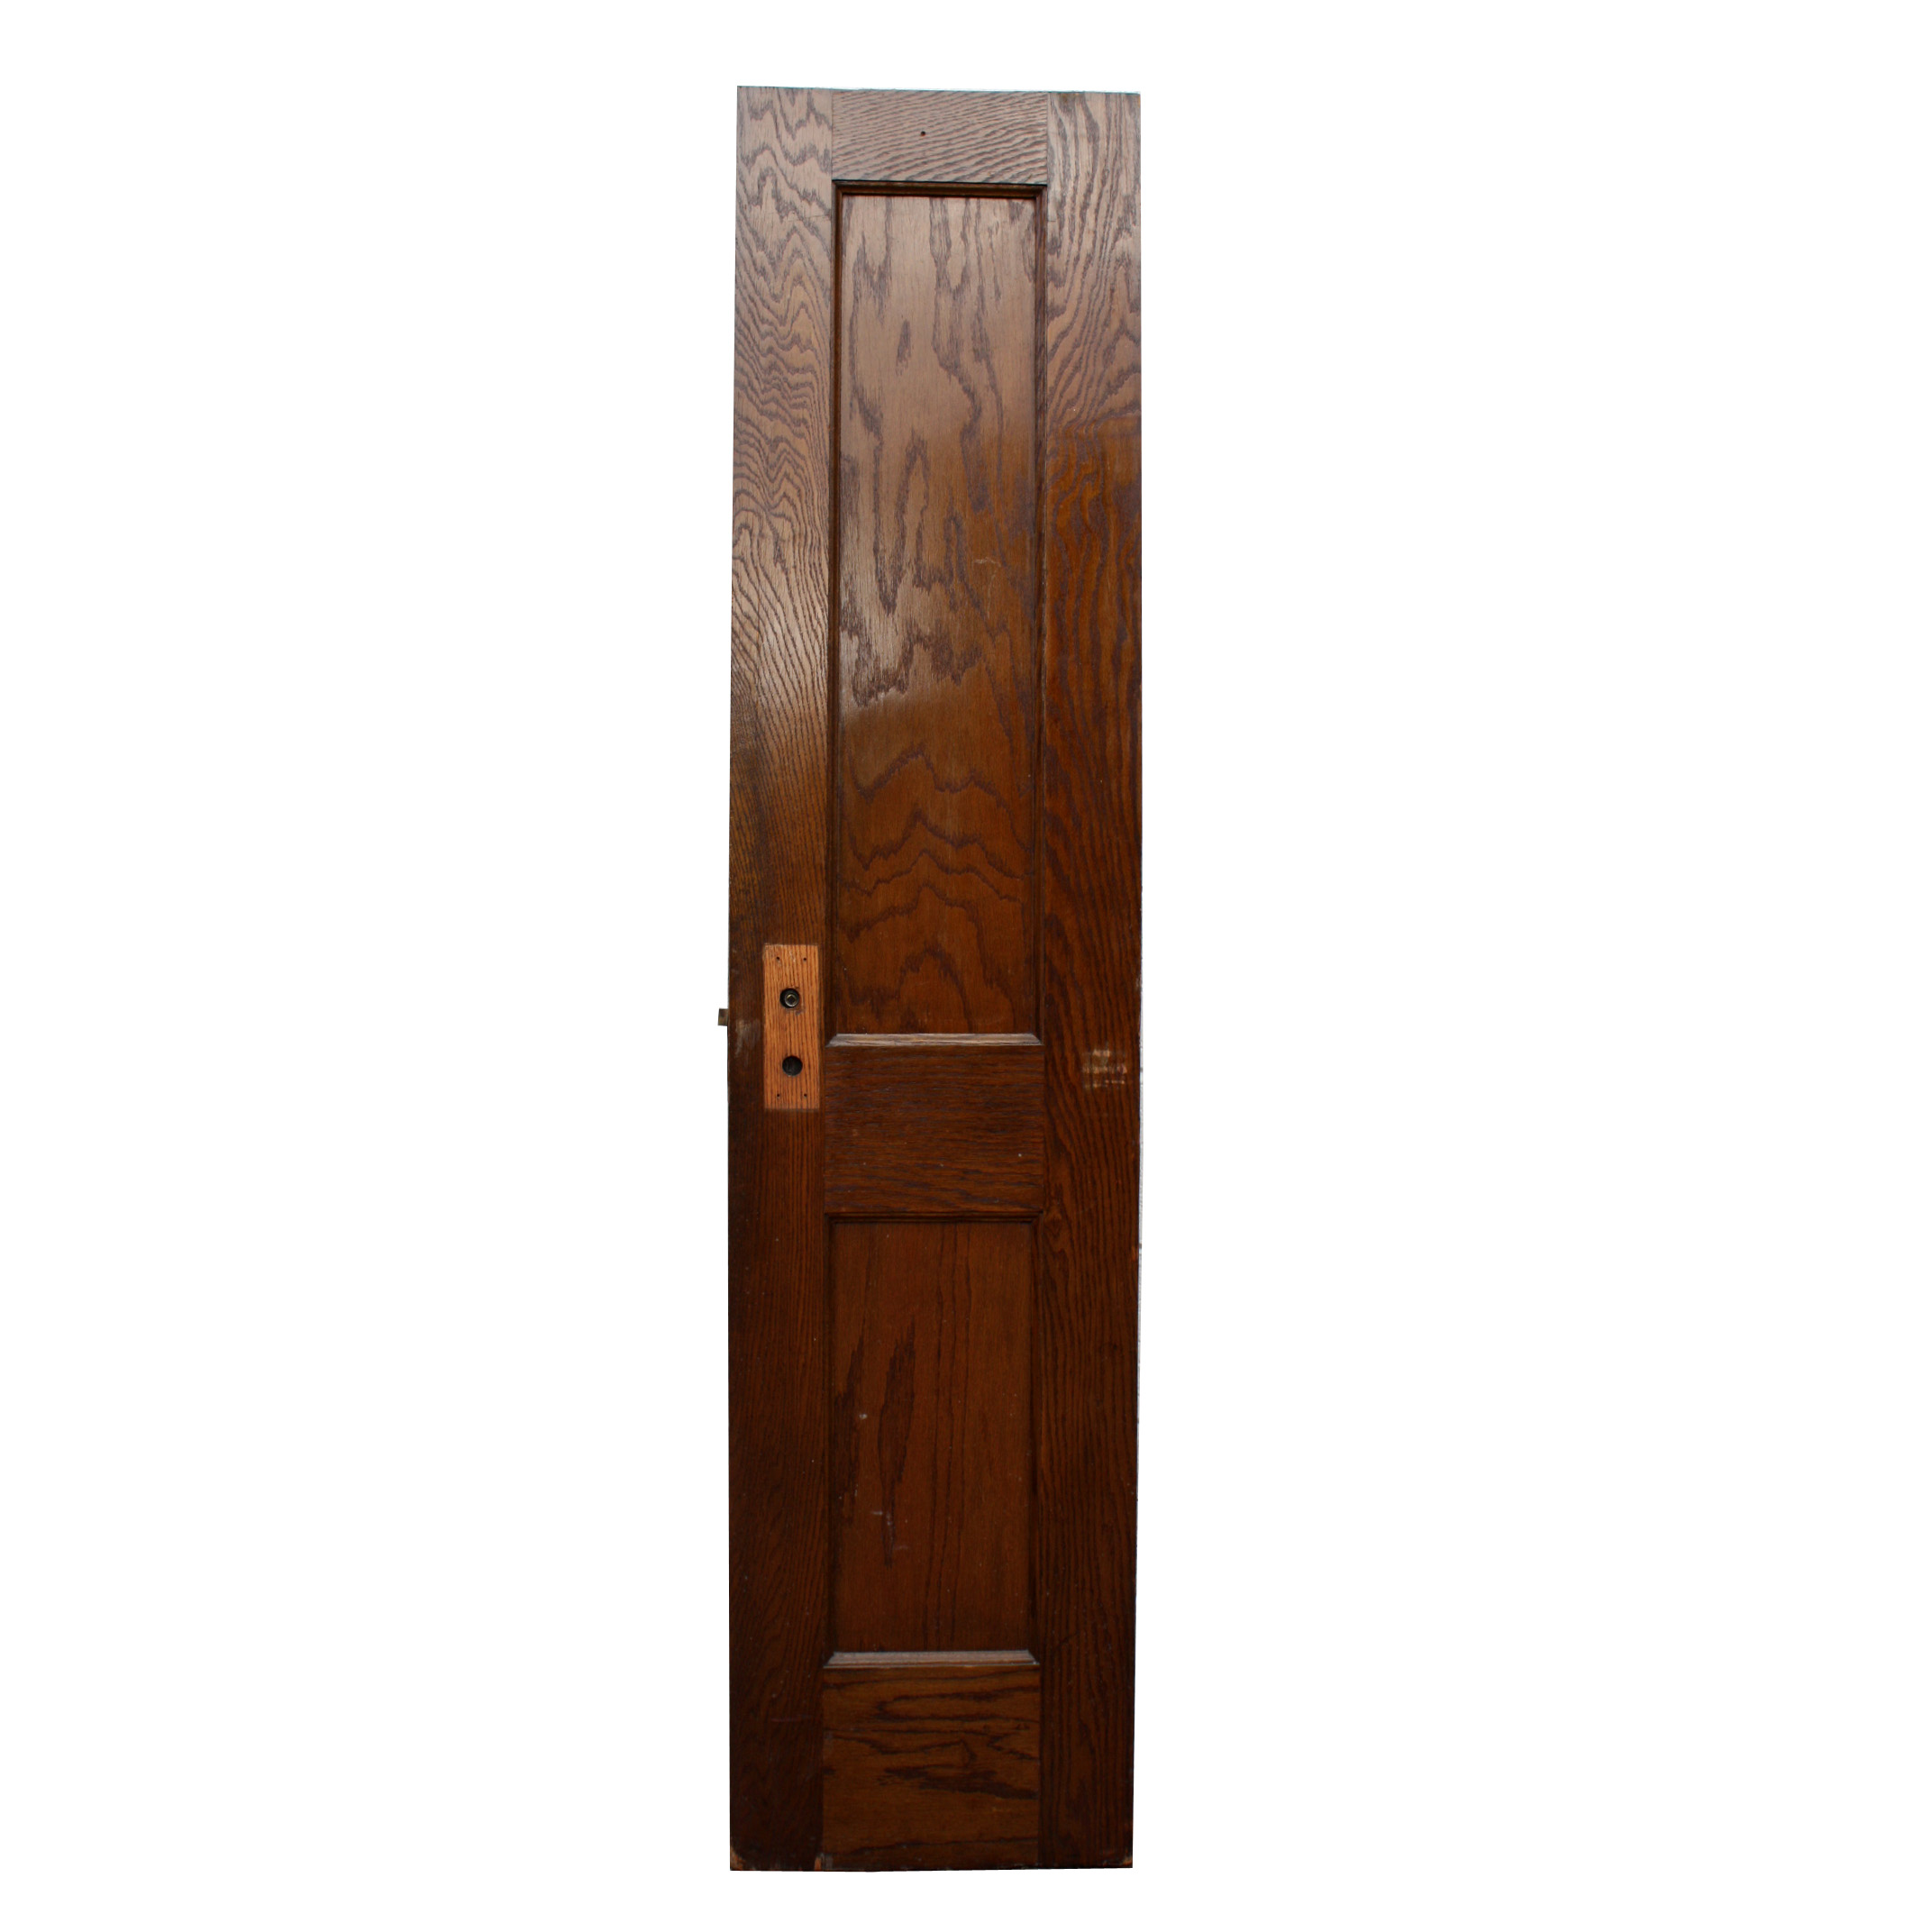 Antique two panel solid wood 18 oak doors nid23 for for Solid wood exterior doors for sale